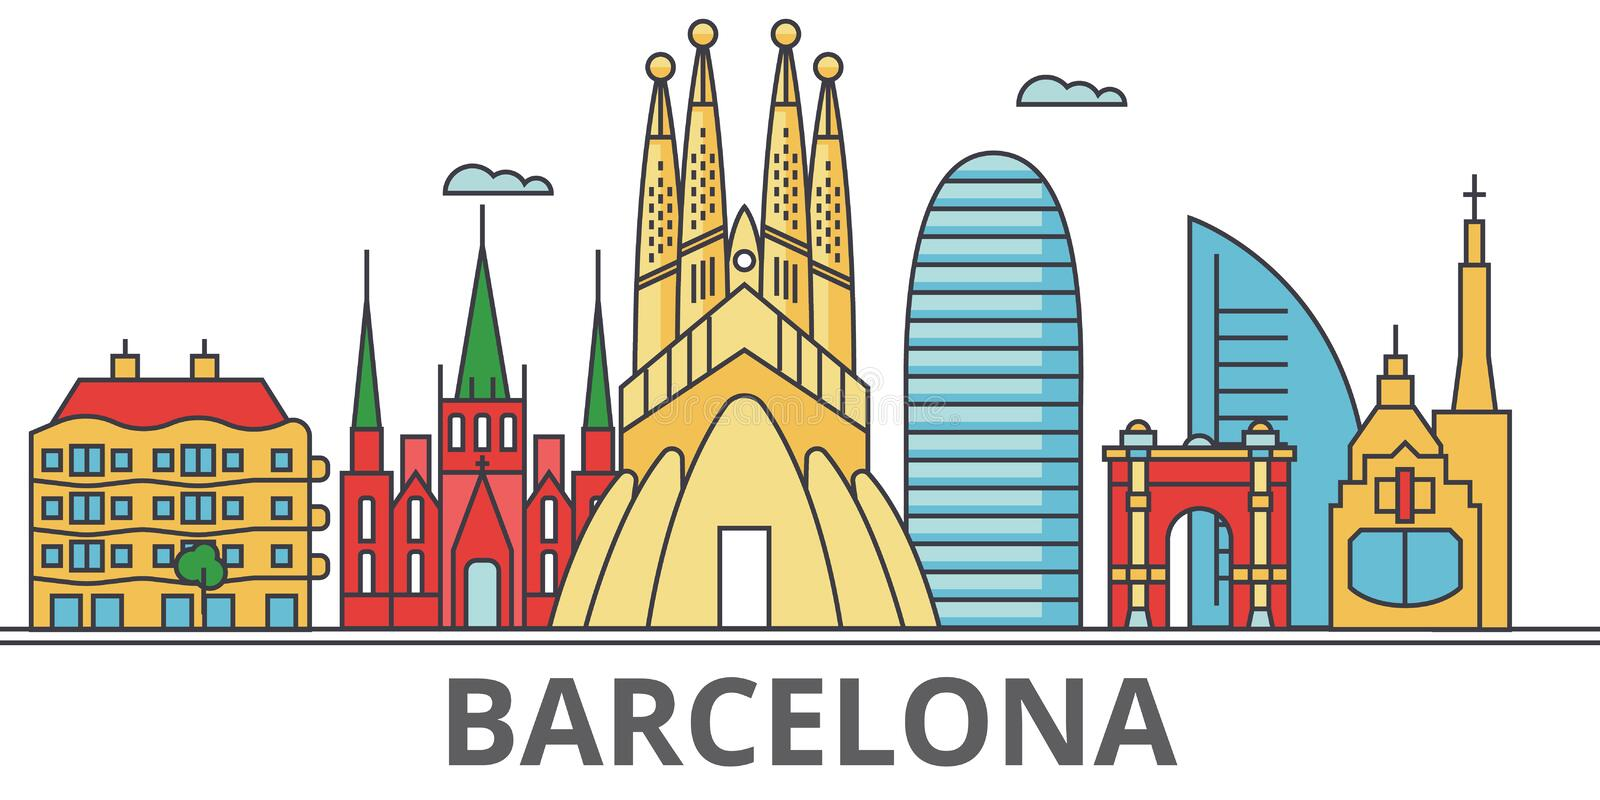 De stadshorizon van Barcelona vector illustratie